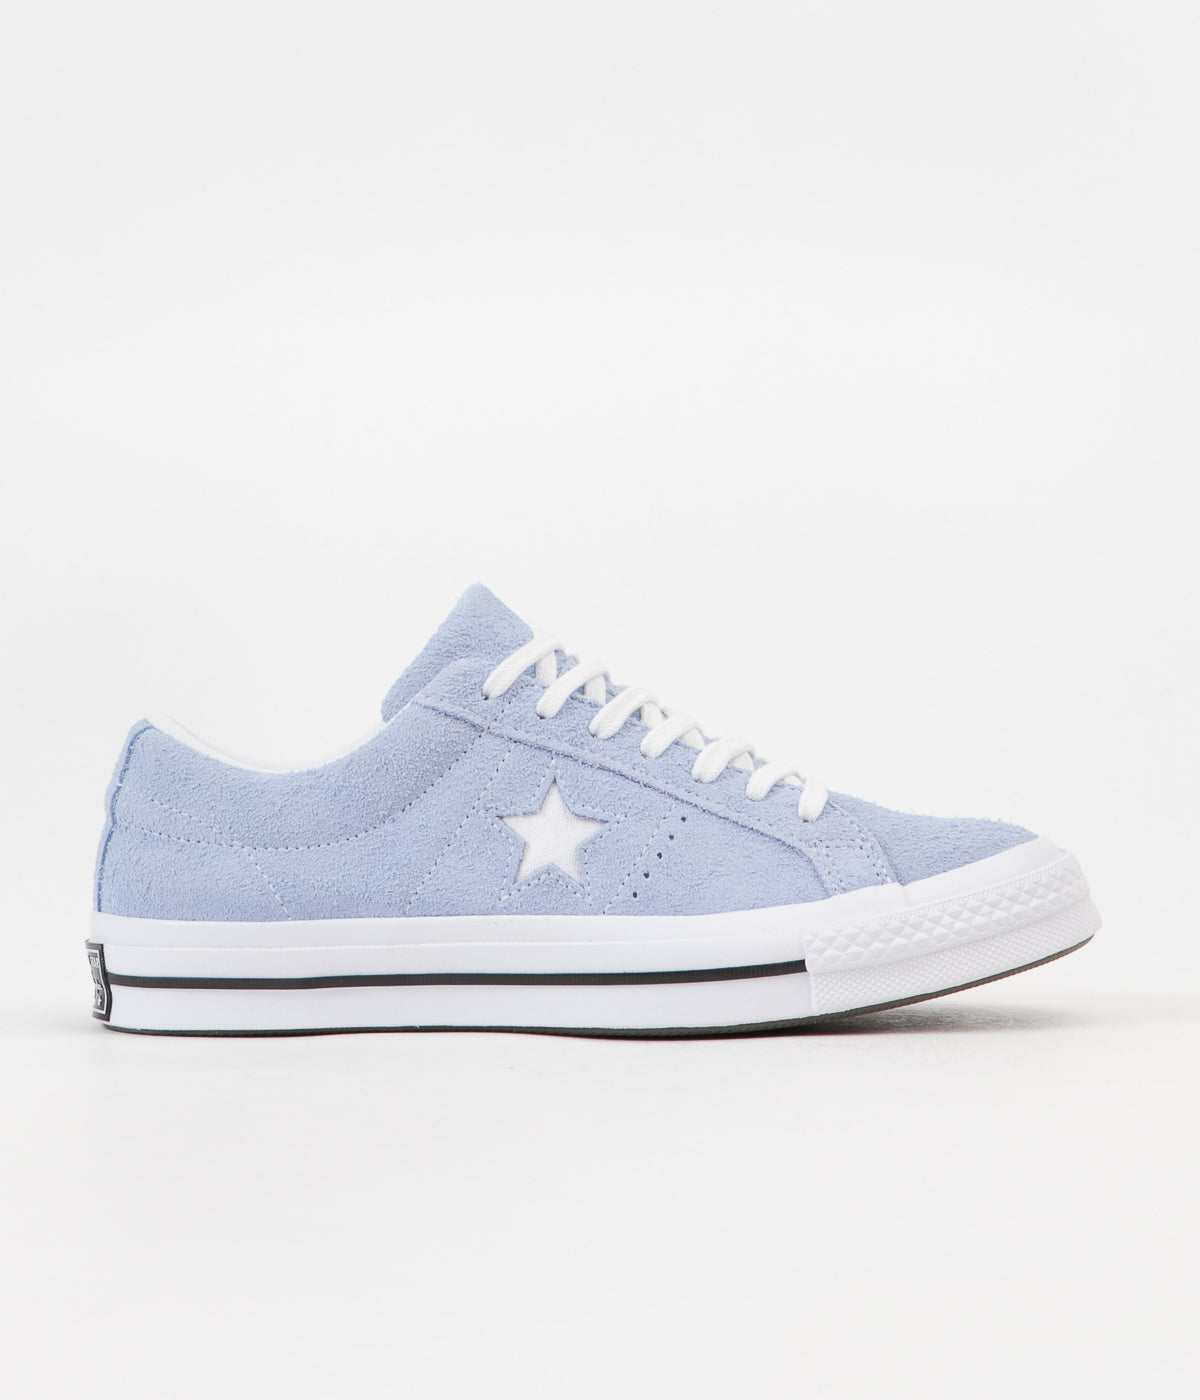 3ada33a46c2 Converse One Star Ox Shoes - Blue Chill   White   Black